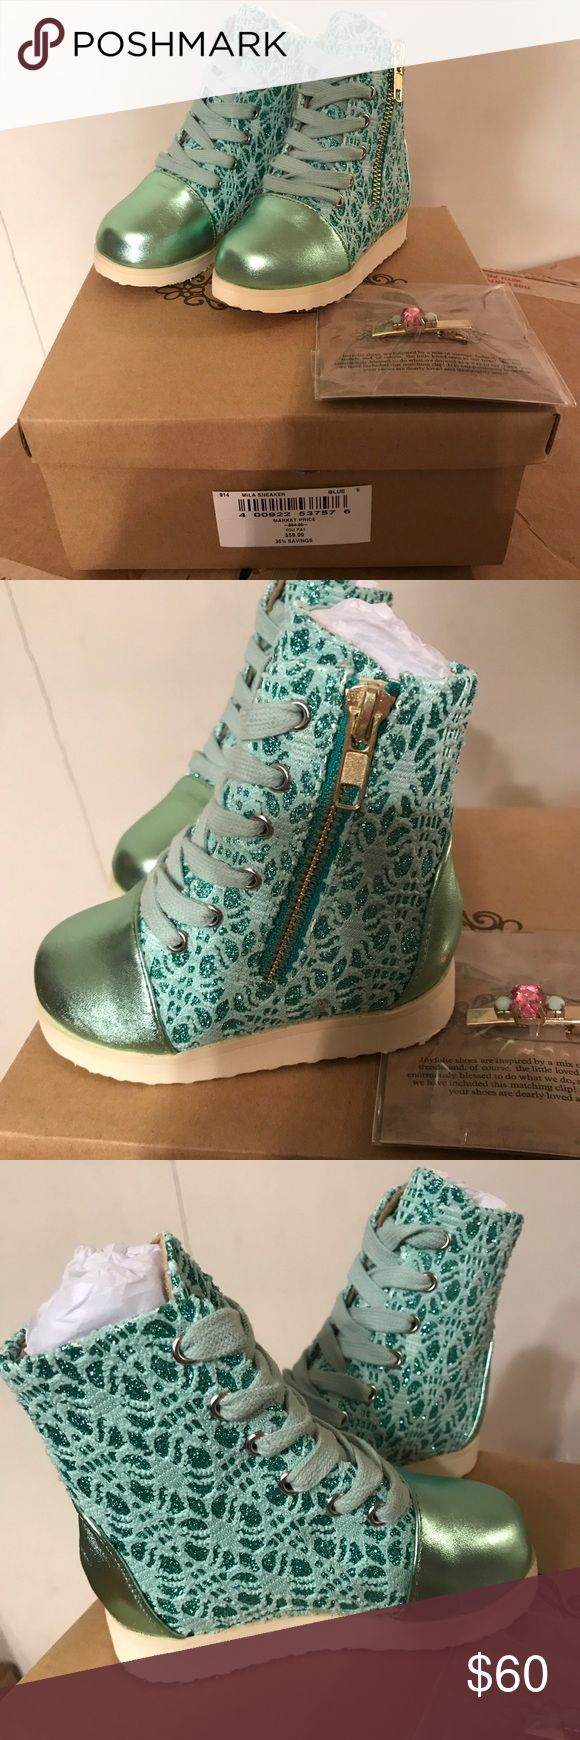 "Joyfolie Girl's Mila High-Top Sneakers Sz 6 Designed mesh upper with shiny cap toe lends a cute look Shaft, 3.75"" Leg circumference, 8"" Cap toe Glitter/leather/textile upper Zipper in side Textile lining Ethylene vinyl acetate sole Imported Joyfolie Shoes Sneakers"